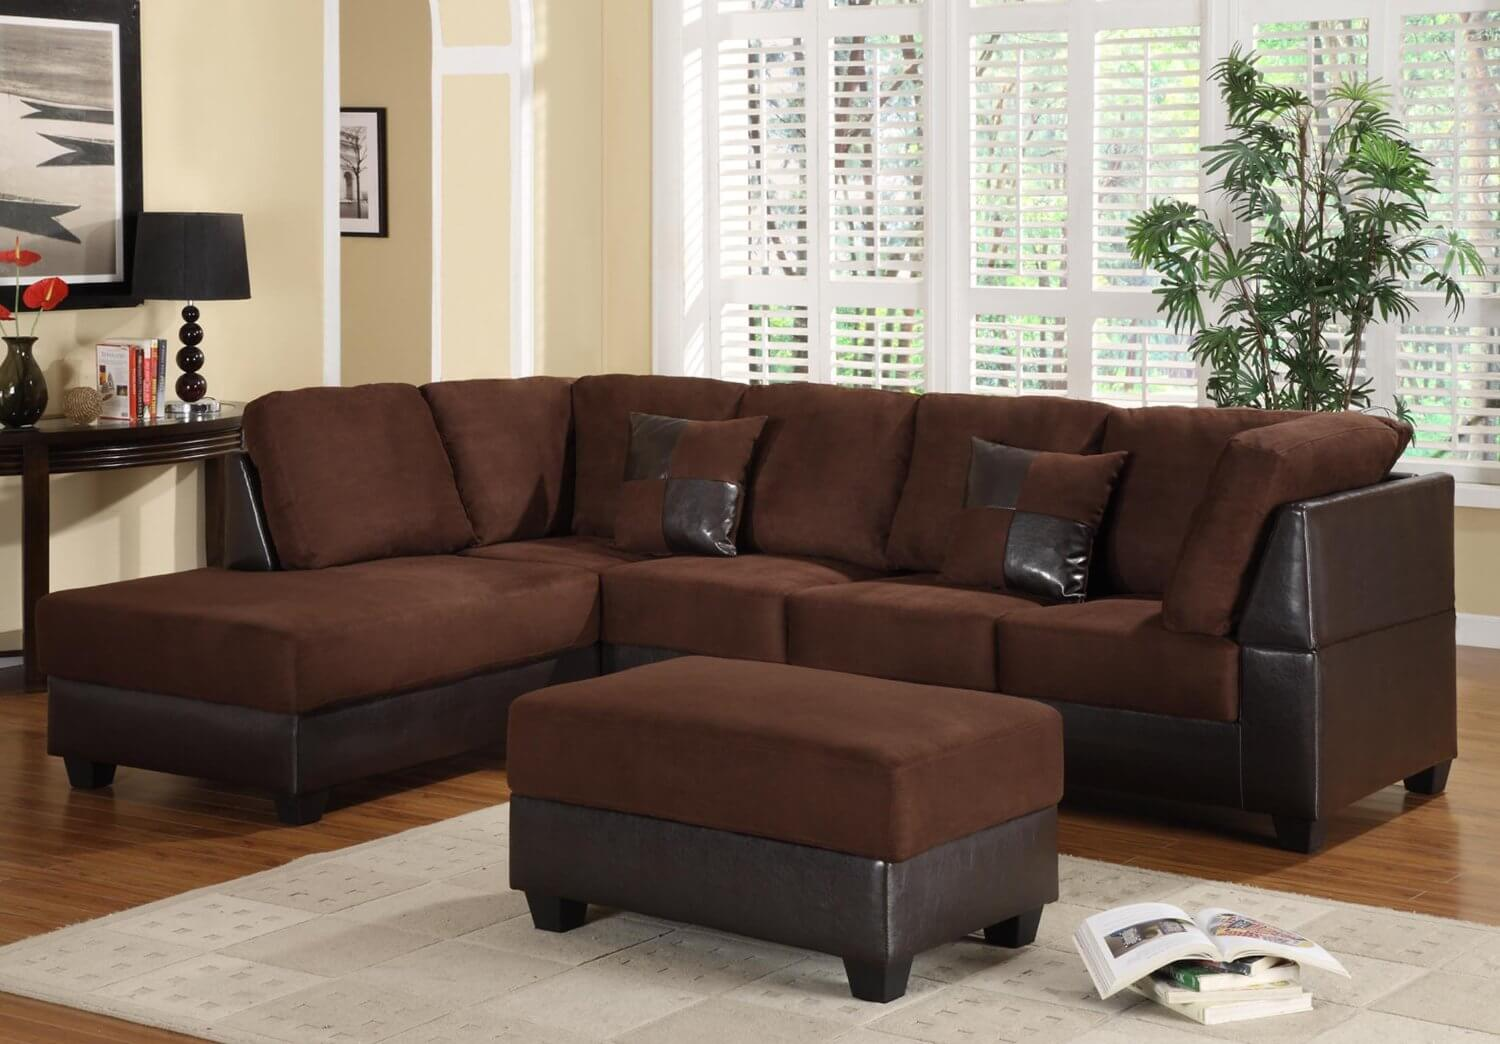 13 sectional sofas under $500 (several styles)